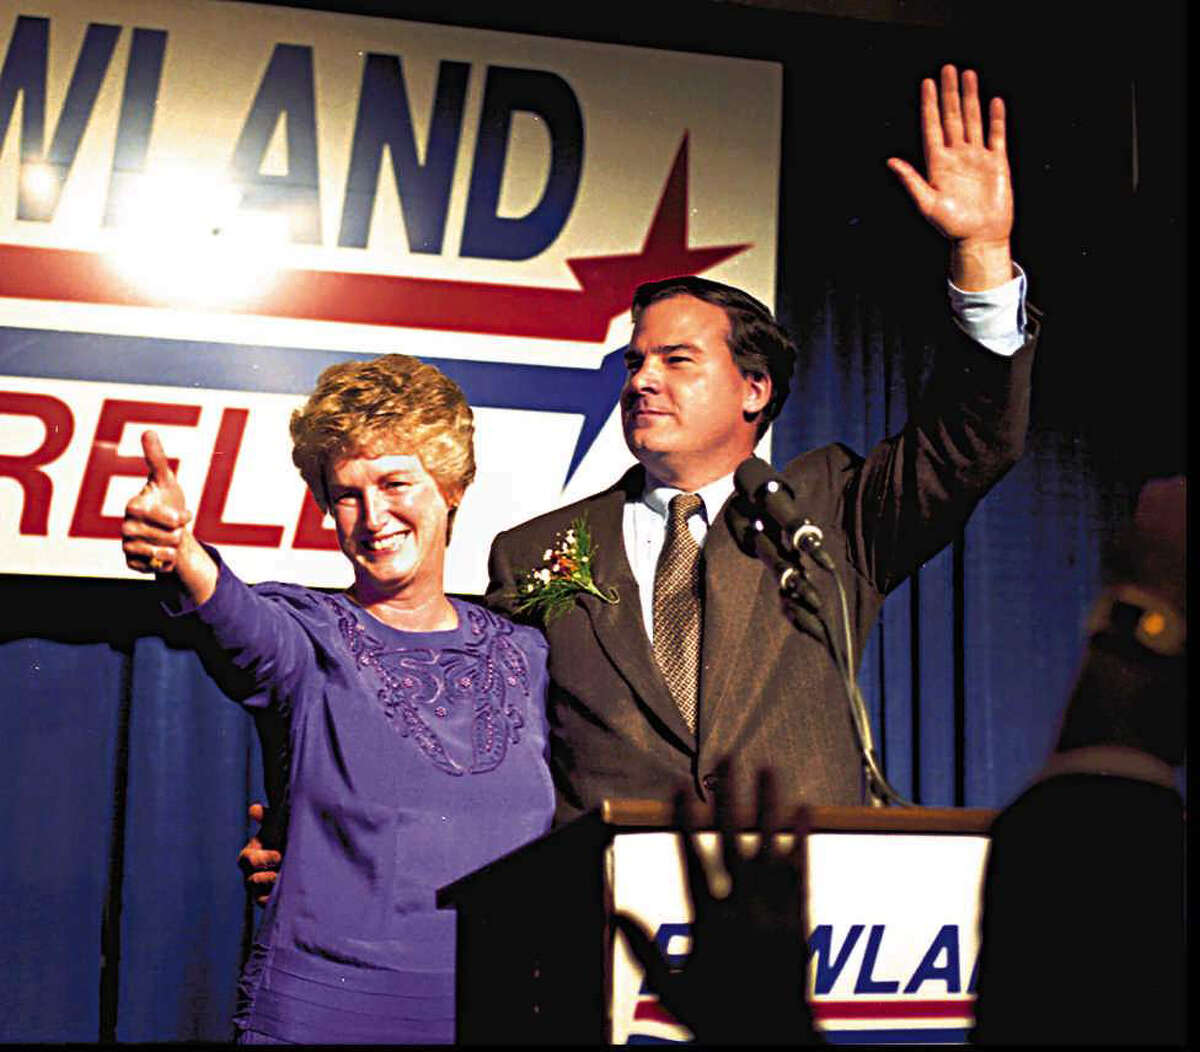 The new governor of Ct John Rowland waves to supporters at the sheraton in Waterbury along side him is his running mate Jodi Rell on Nov. 8th, 1994. (Hartford Courant Photo by Paula Bronstein)